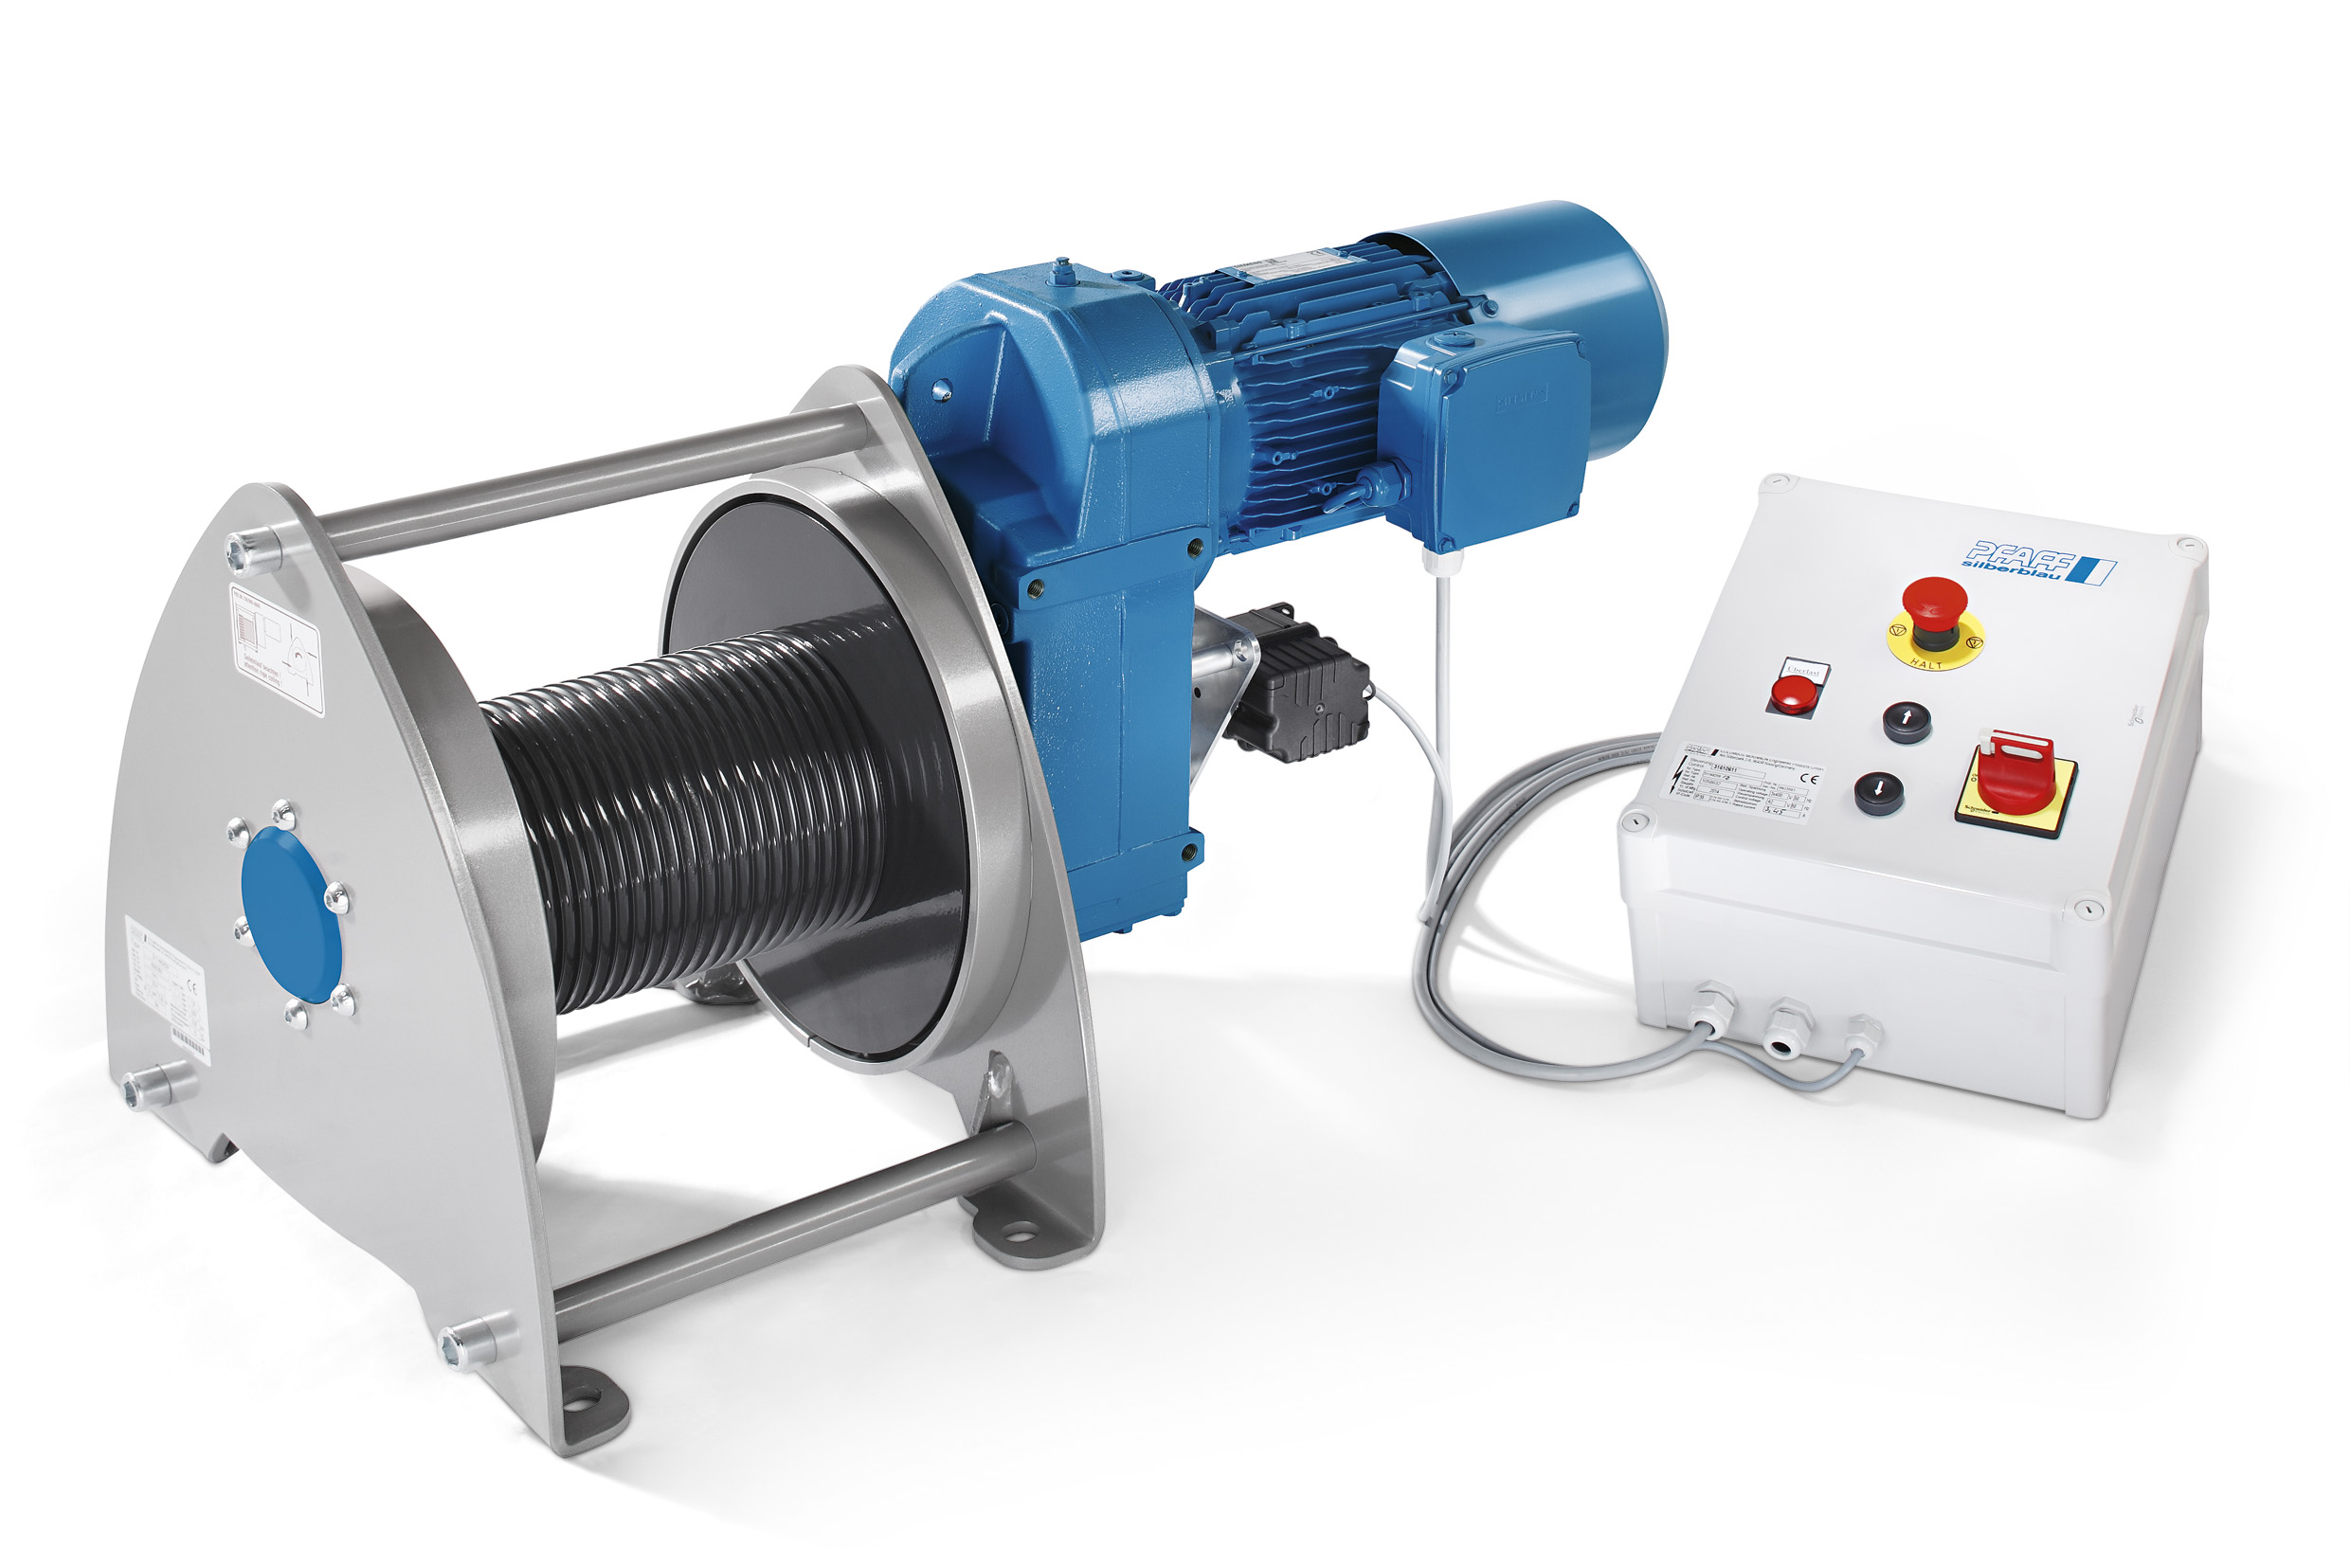 Versatile, safe, quickly available: The Pfaff-silberblau electric ...